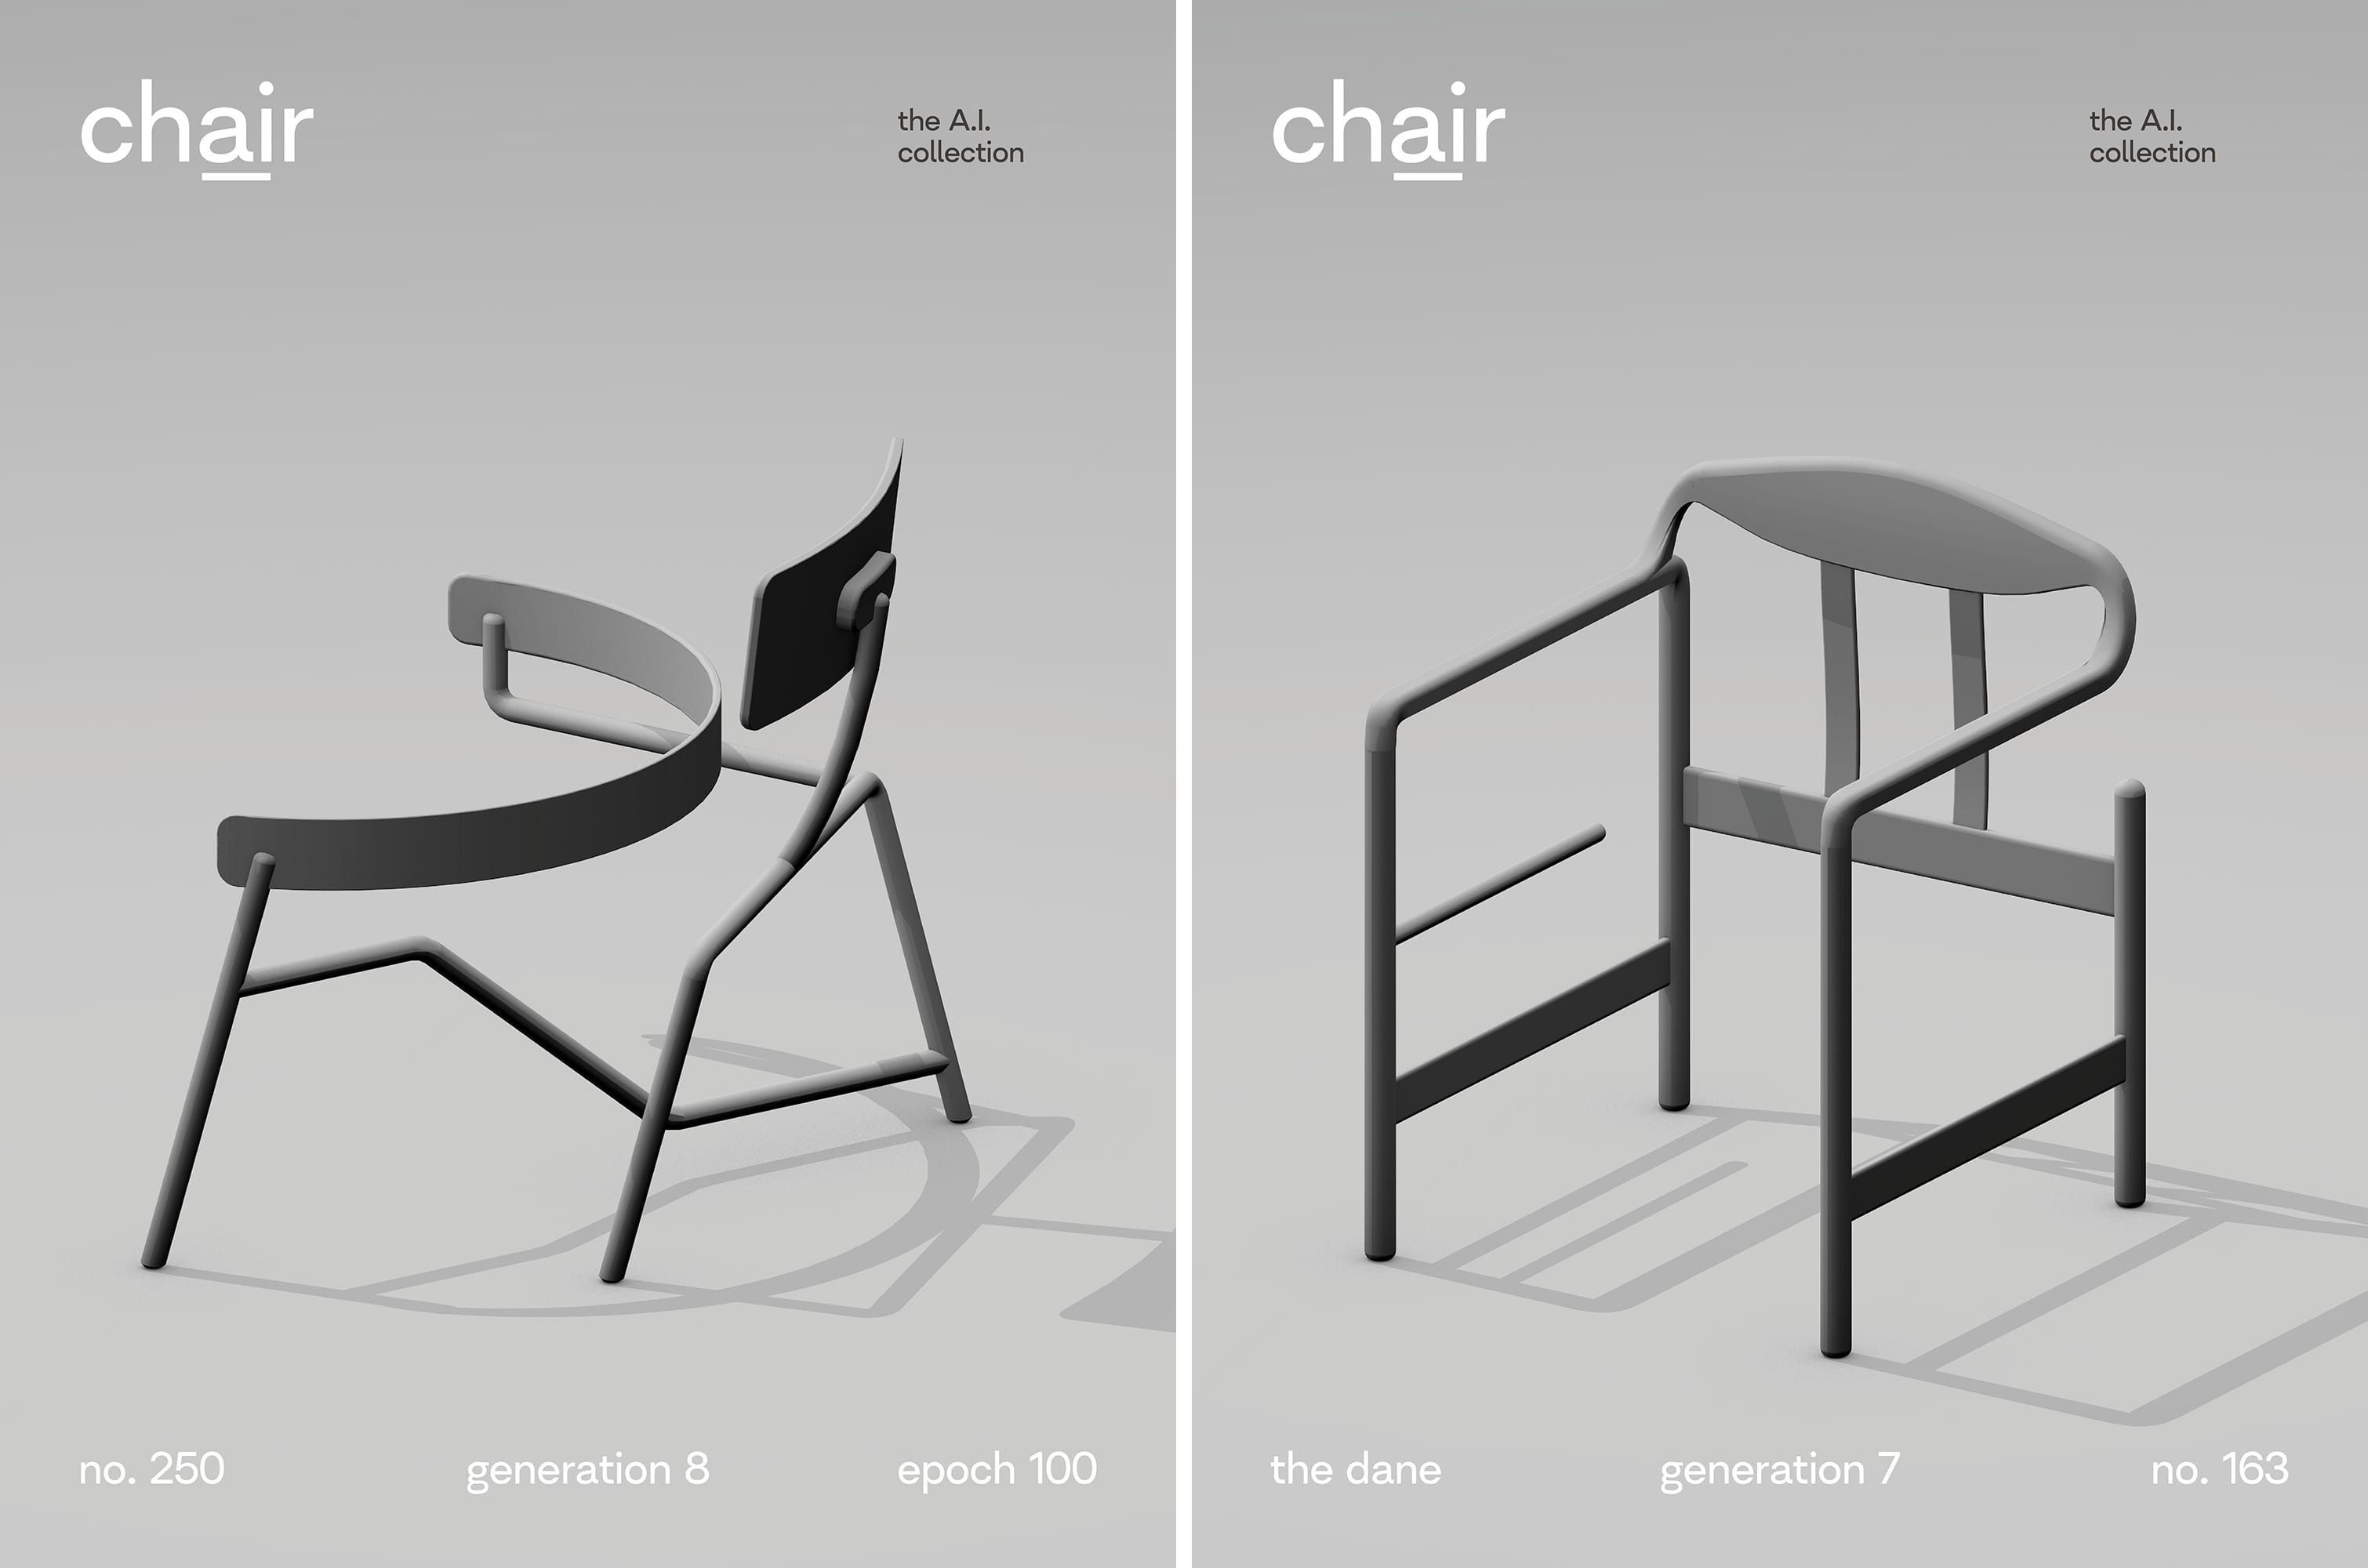 Posters Of Our Chair Designs In A Familiar Industrial Design Aesthetic In 2020 Furniture Ads Affordable Furniture Stores Chair